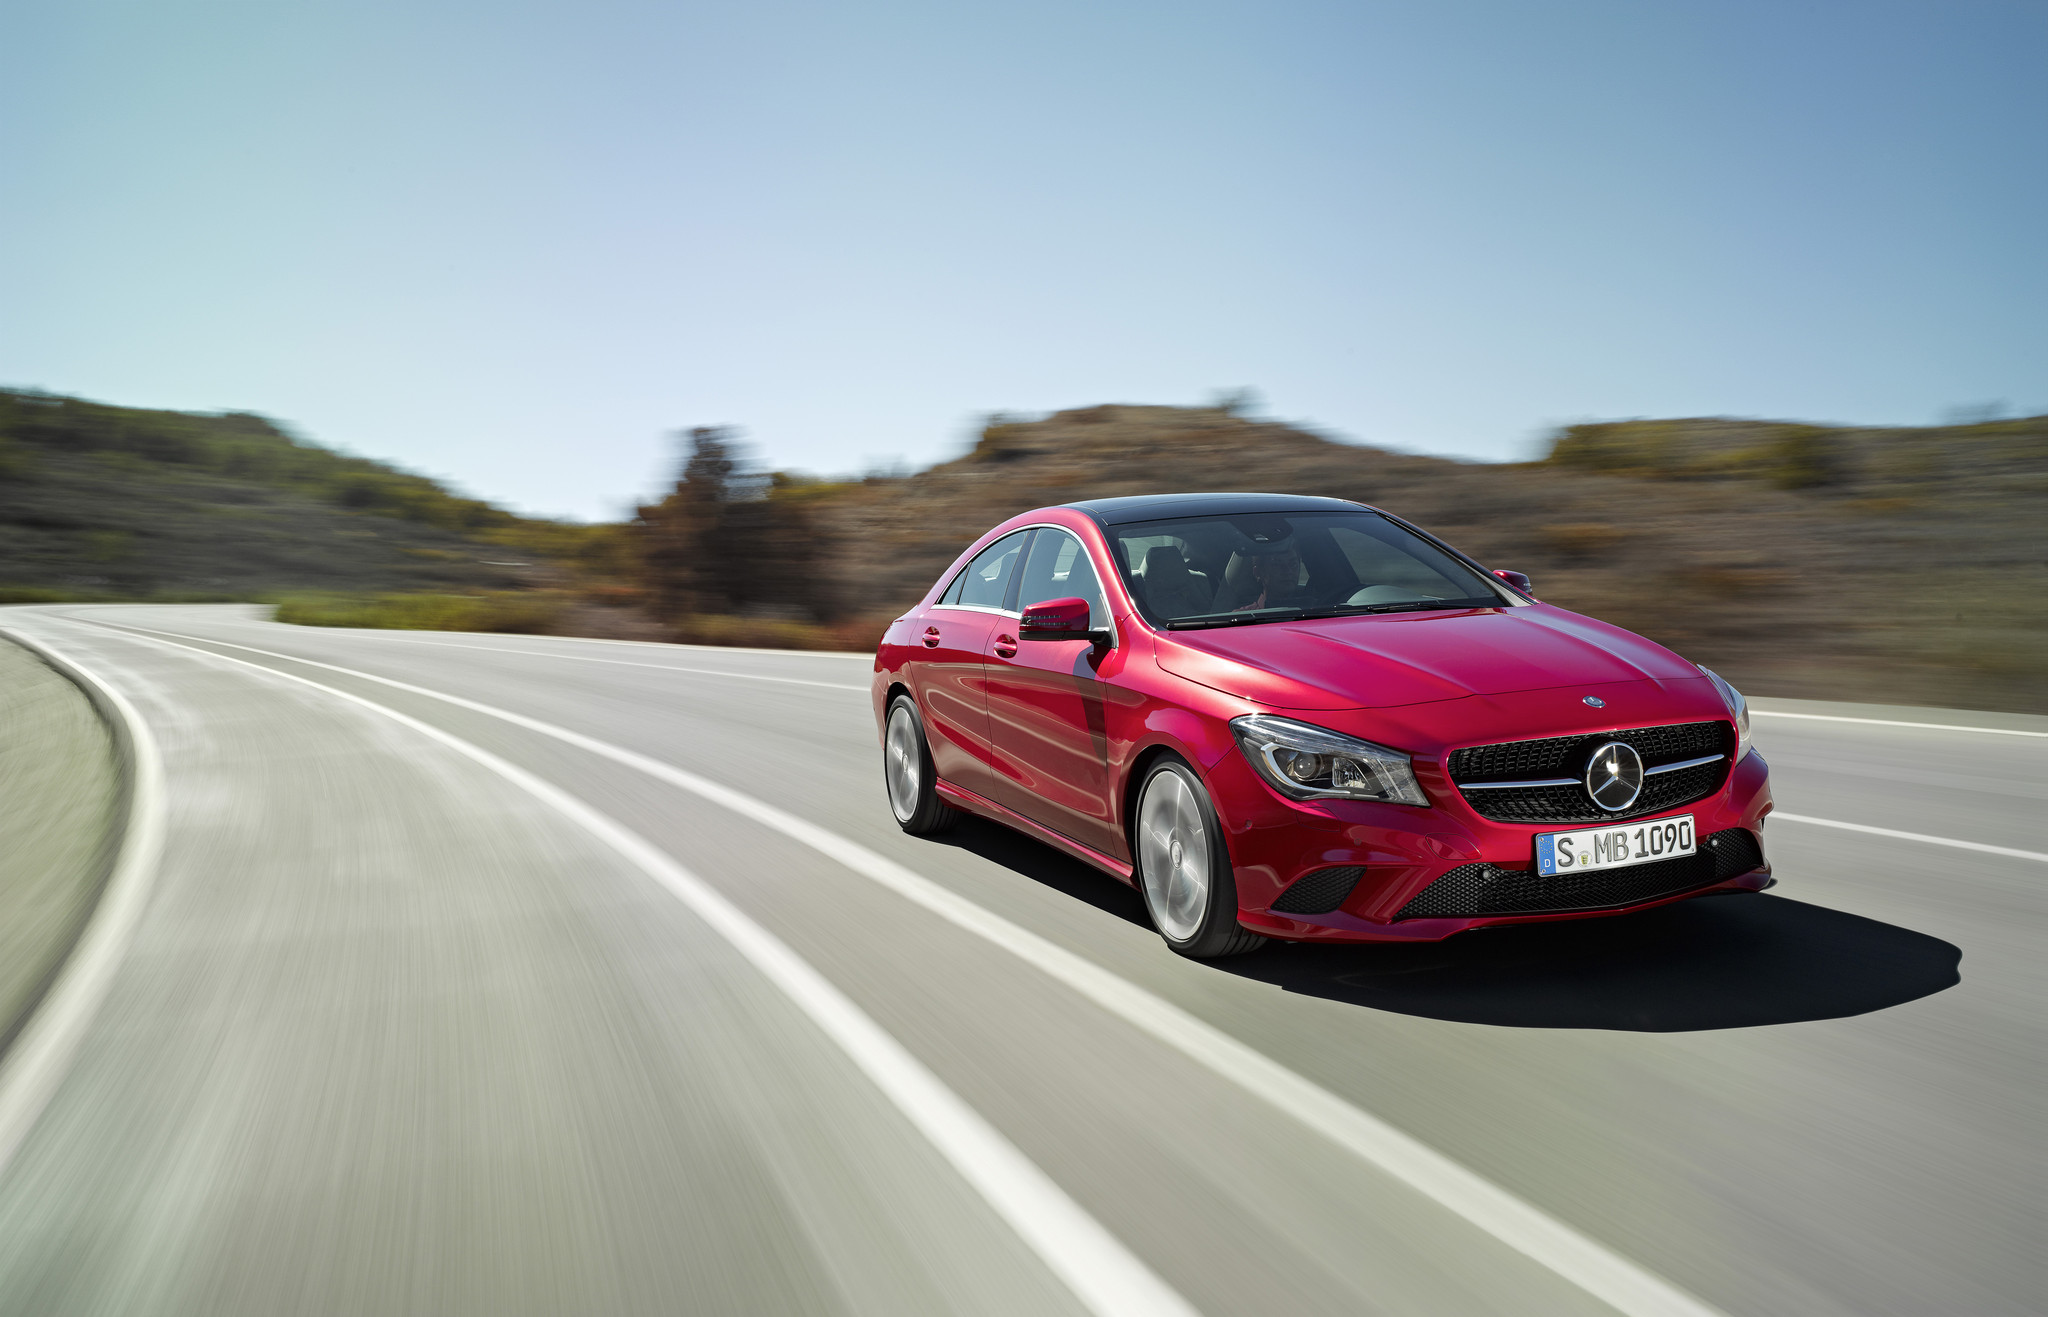 2014 mercedes benz cla250 chicago tribune. Cars Review. Best American Auto & Cars Review